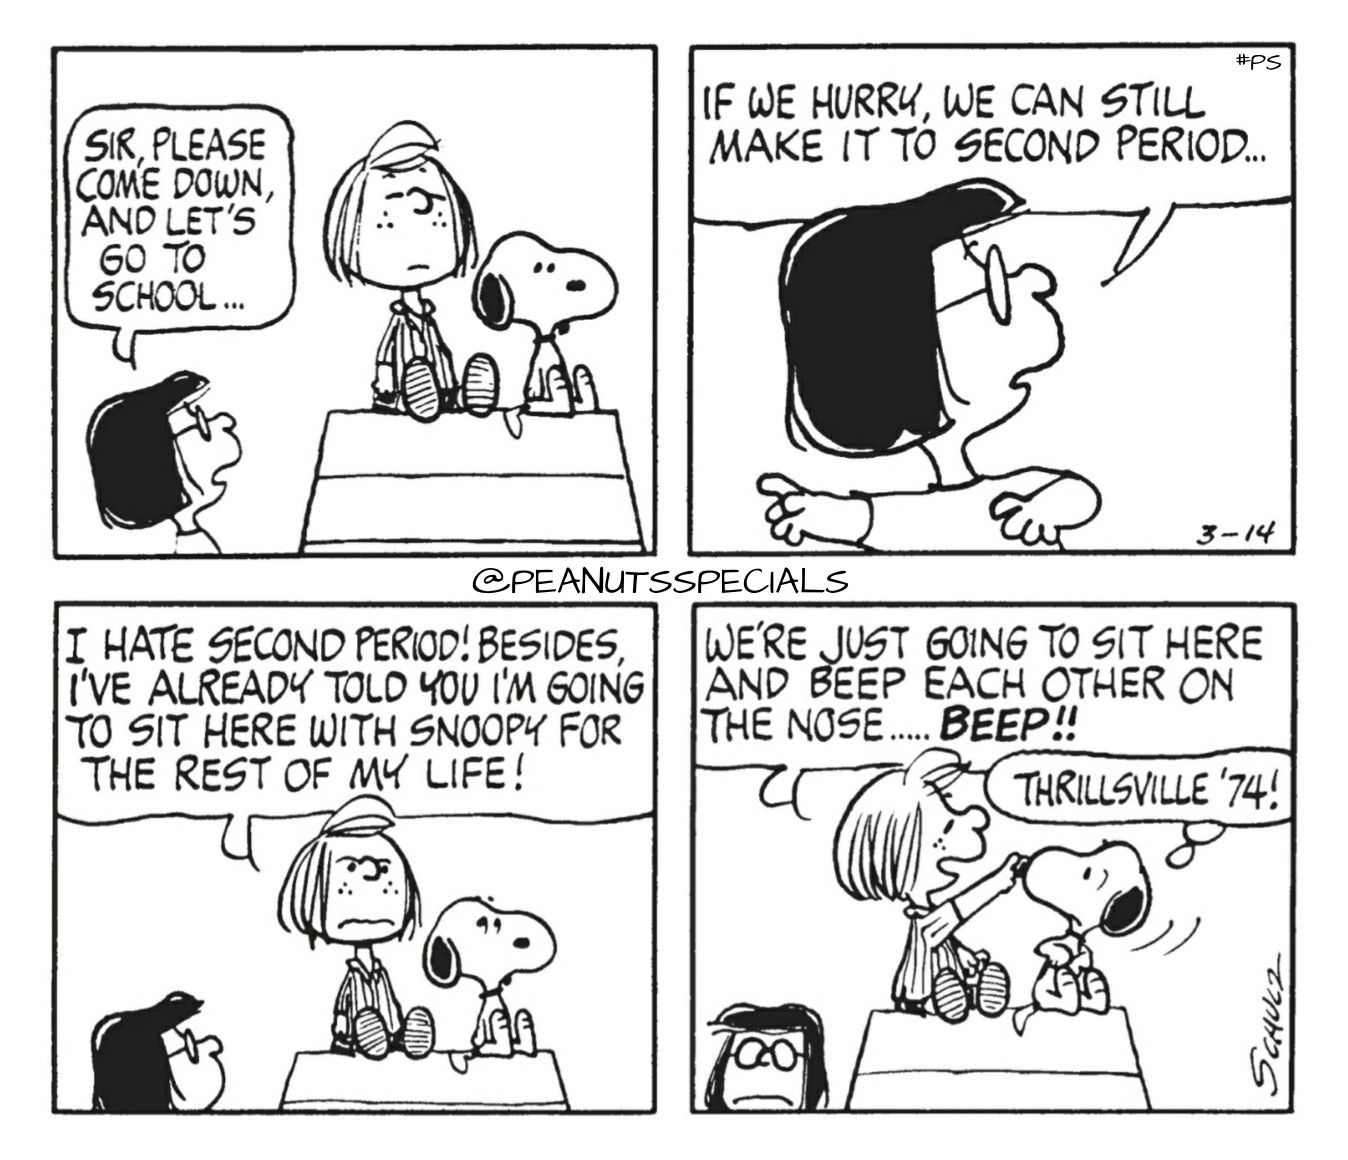 First Appearance: March 14th, 1974 #peanutsspecials #ps